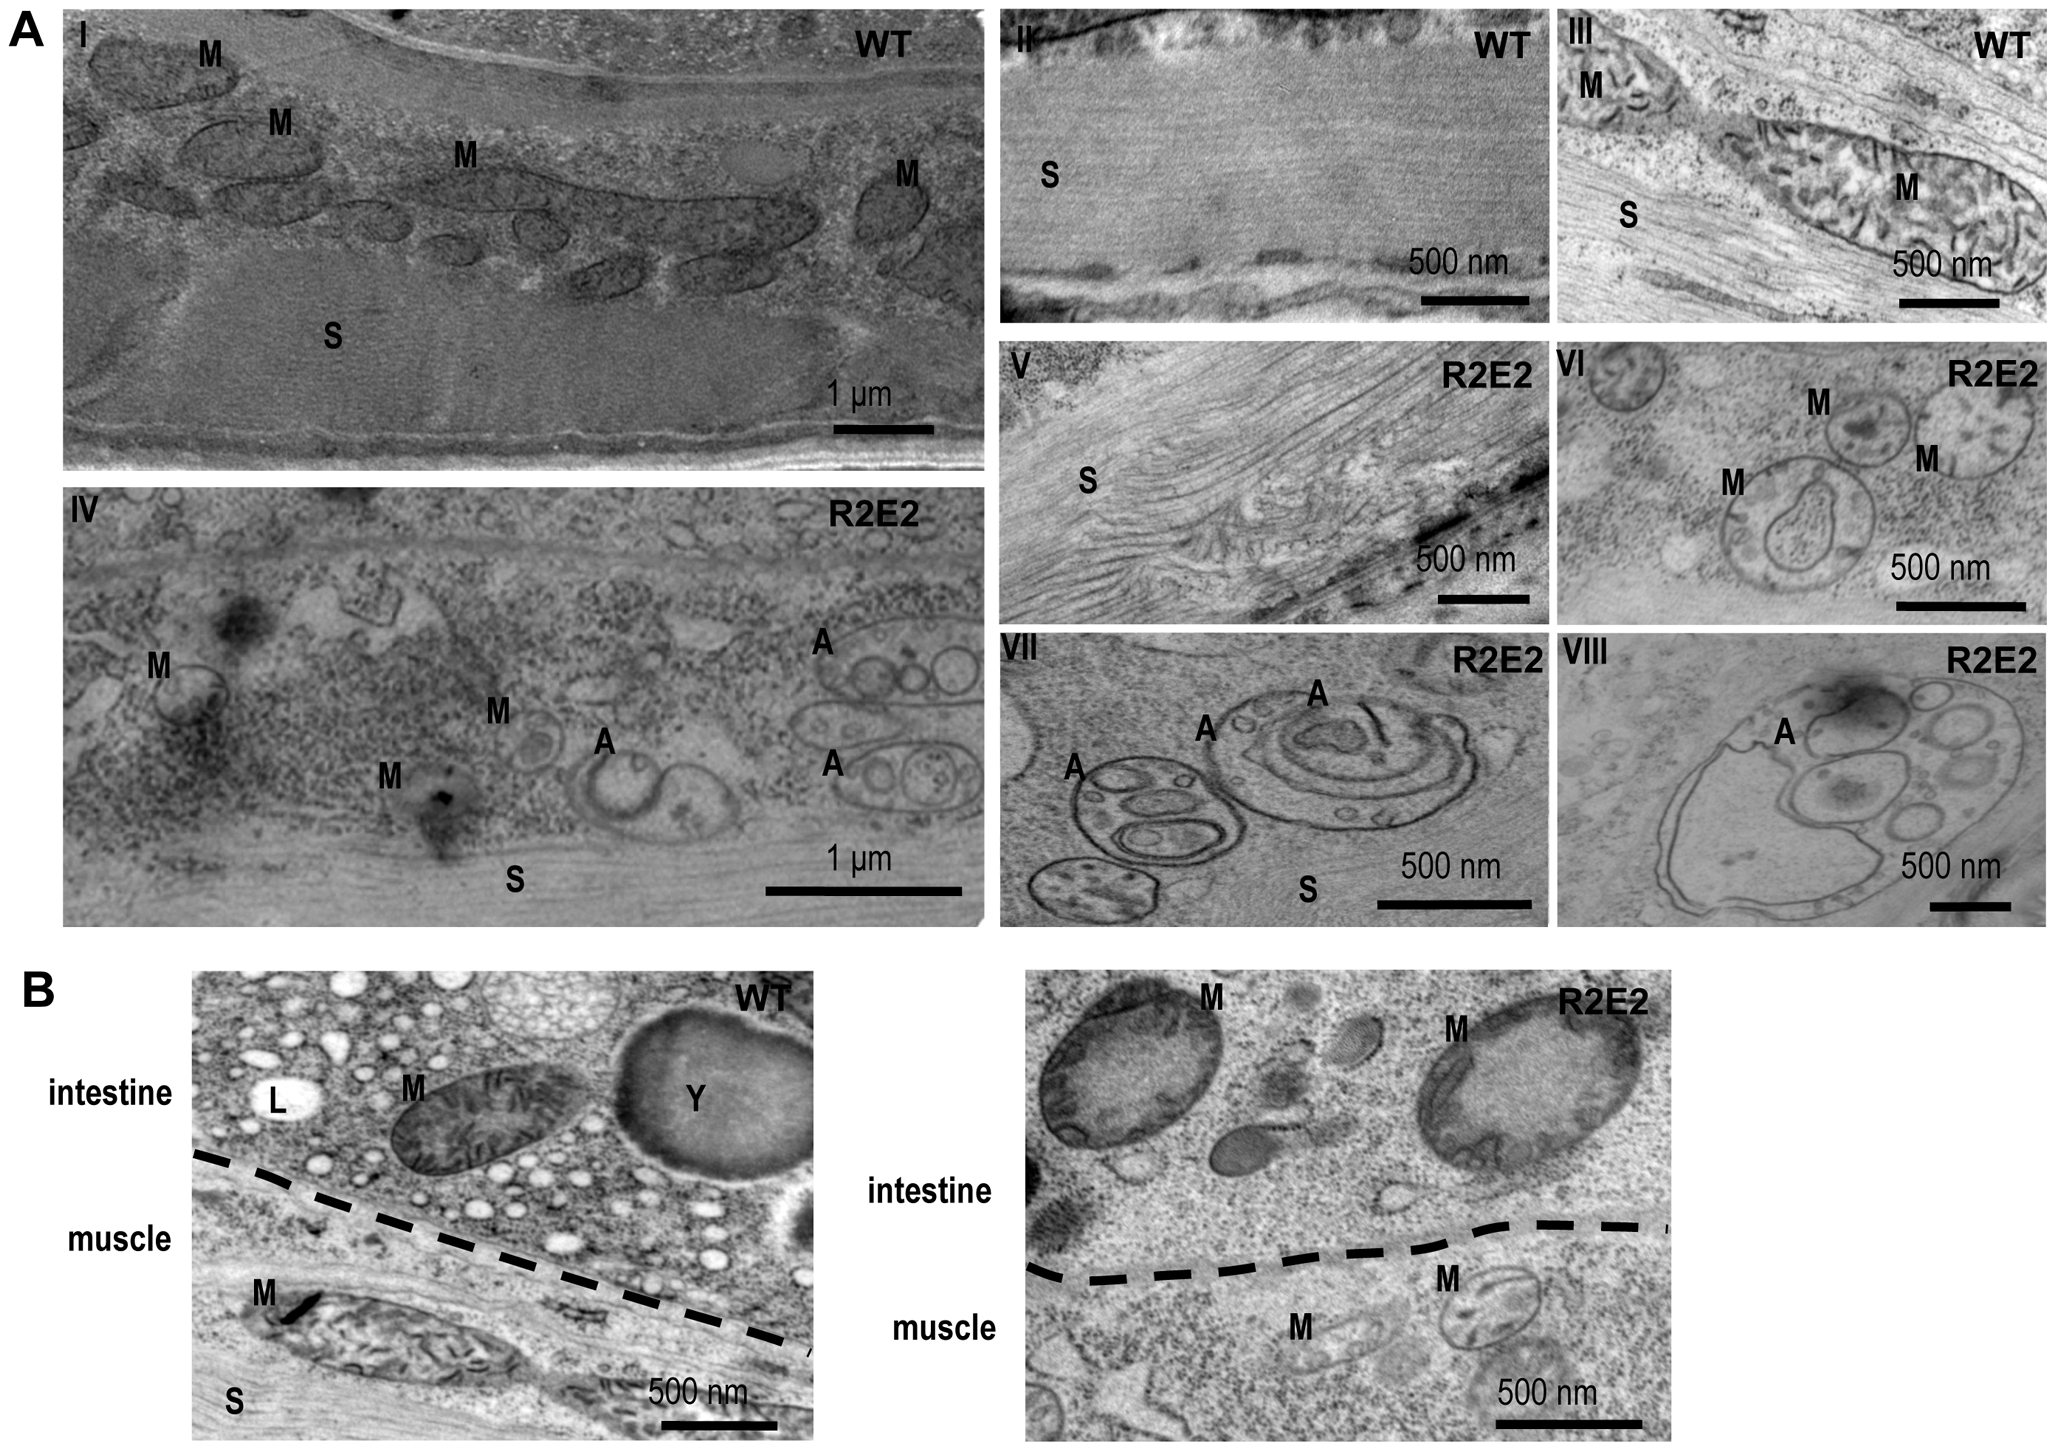 Transmission Electron Microscope (TEM) analysis reveal that mitochondrial defects and induction of autophagy are prominent features of prion domain–induced pathology.